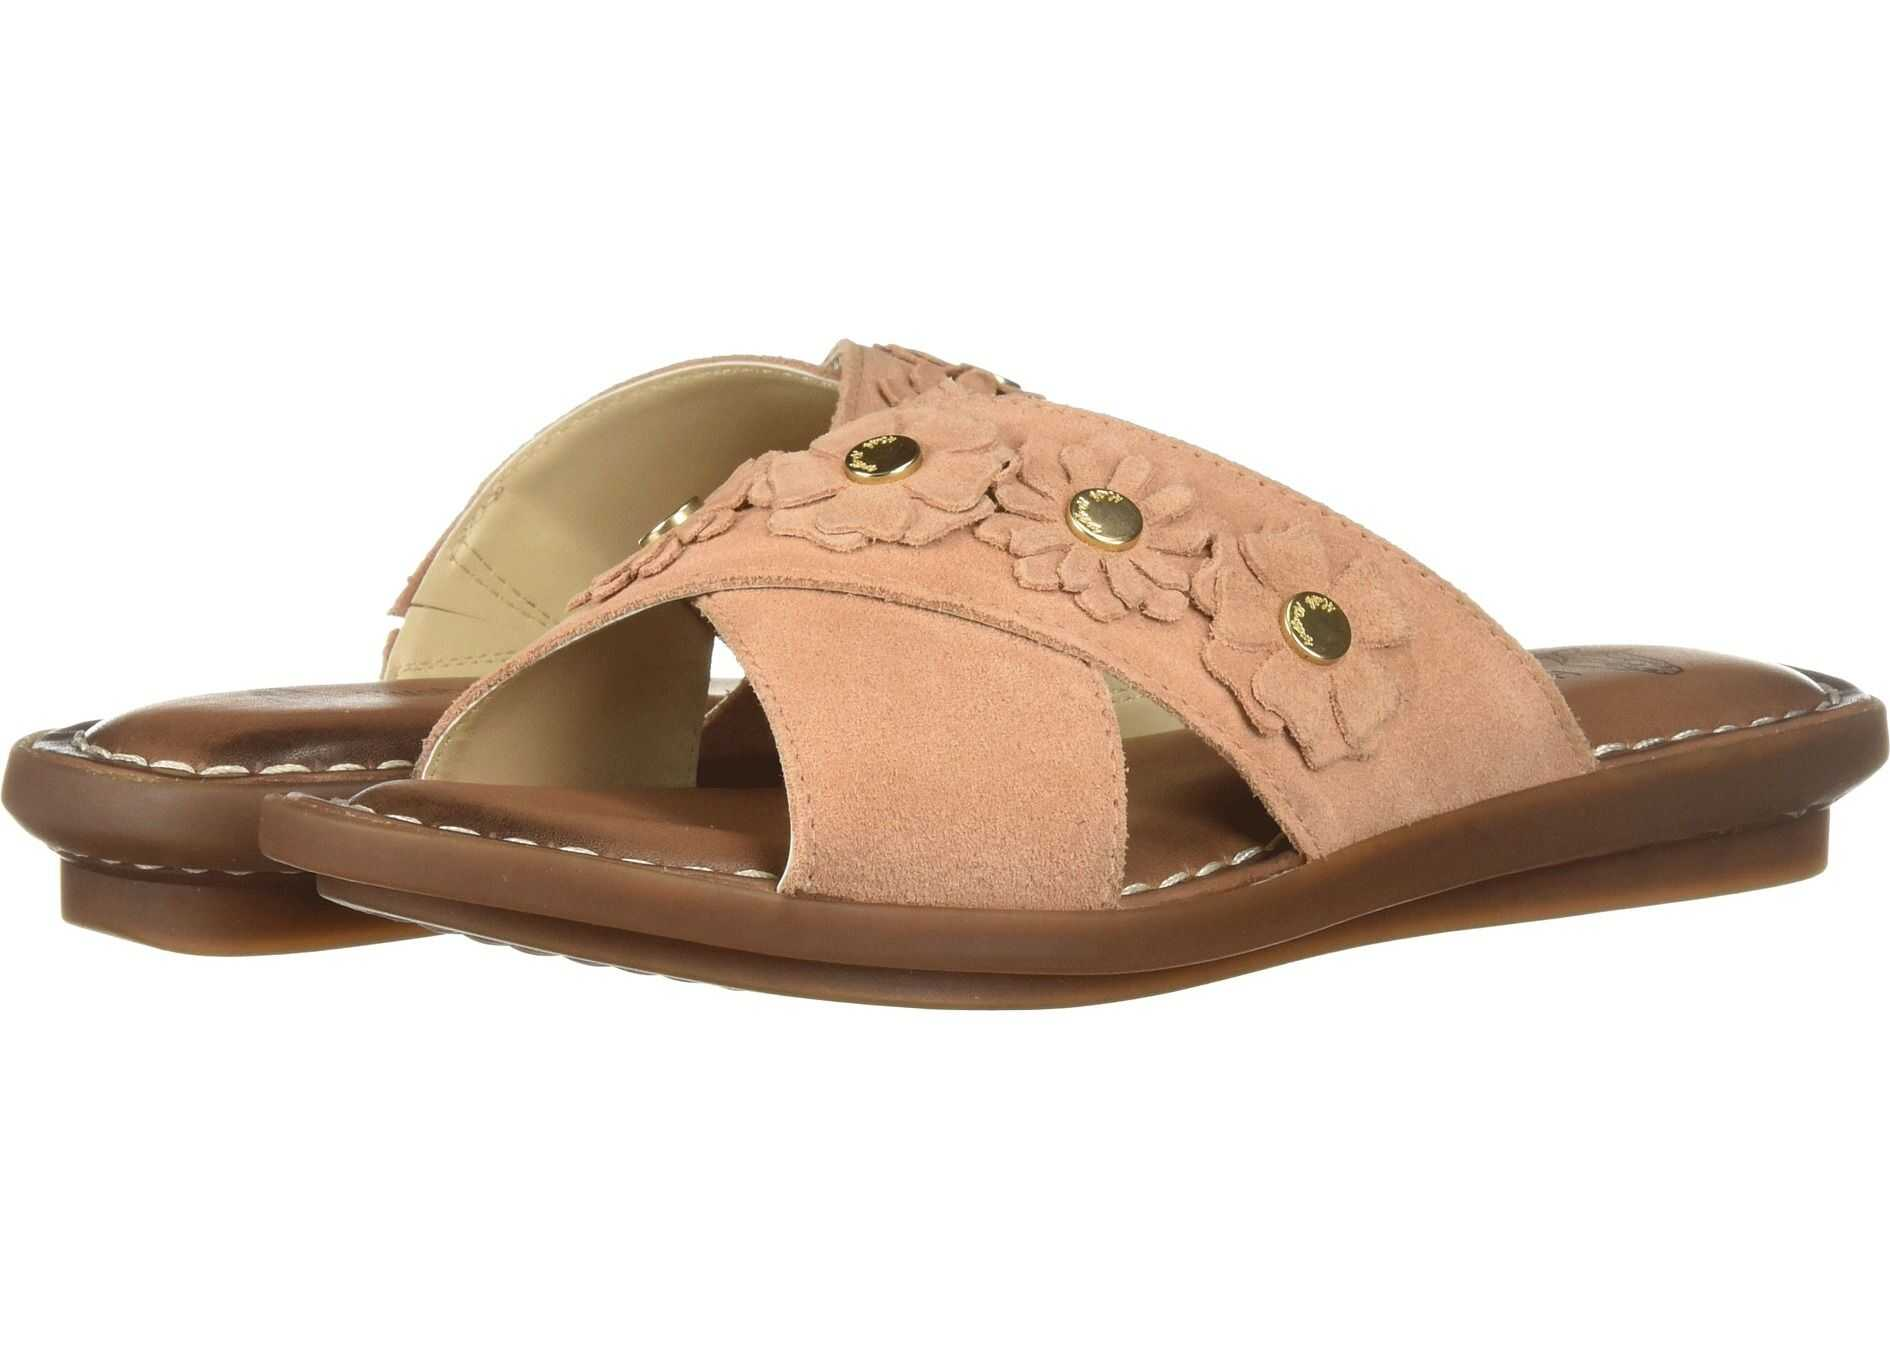 Hush Puppies Olive Cross Band Slide Pale Peach Suede